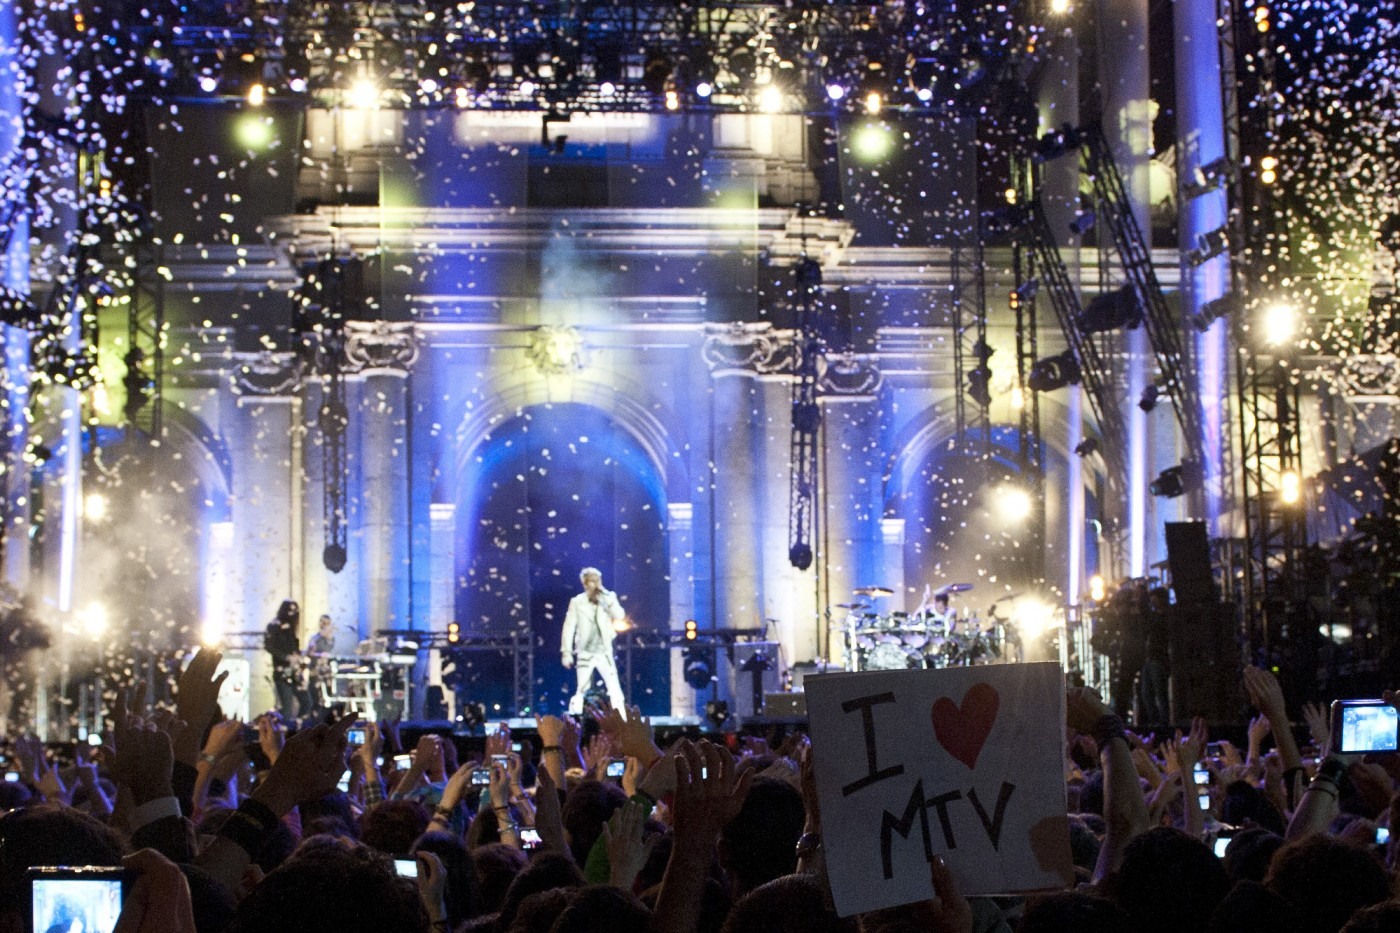 MADRID, SPAIN: Thirty Seconds to Mars perform live at Puerta de Alcala on November 7, 2010 in Madrid, Spain